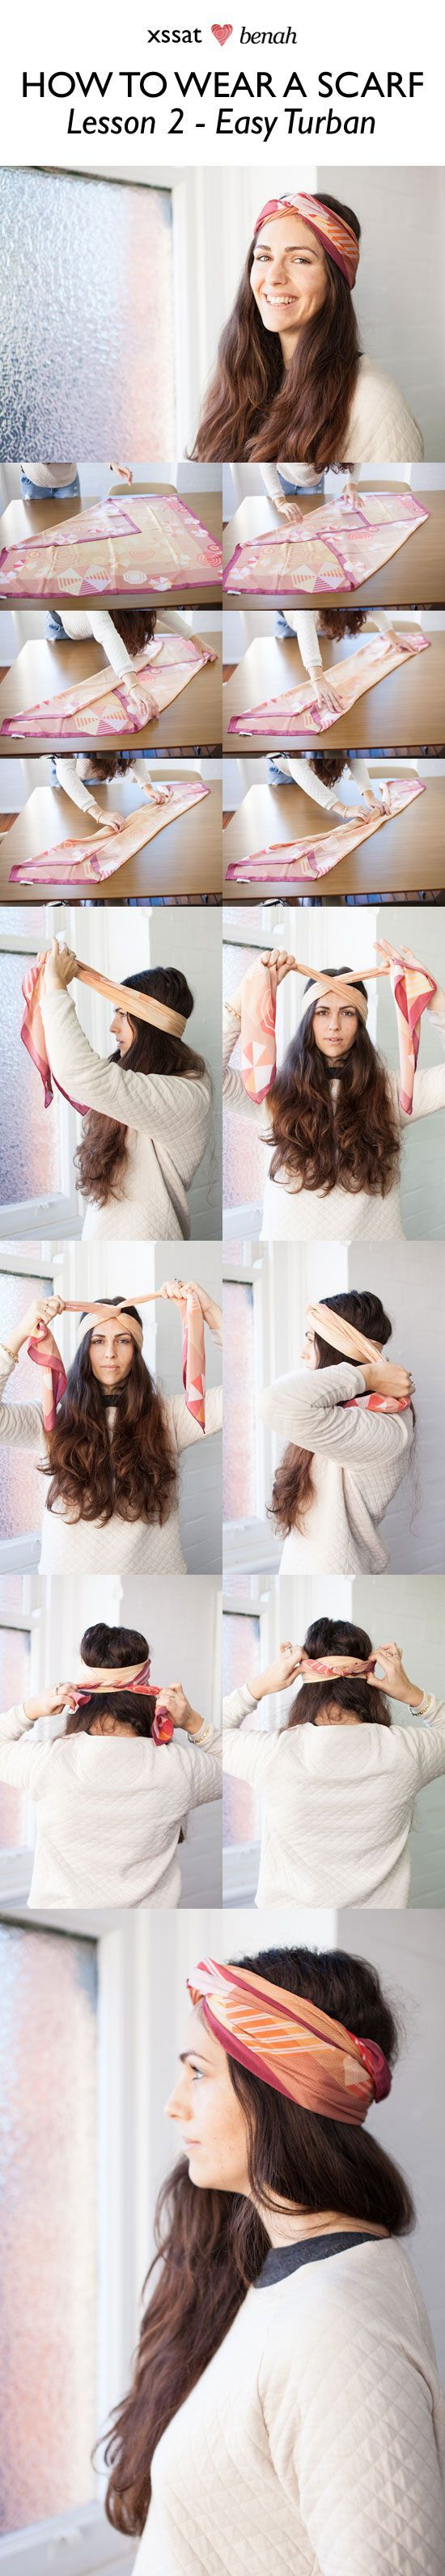 How to wear a scarf! Great tutorial on how to turn a scarf into a turban. Visit ... -